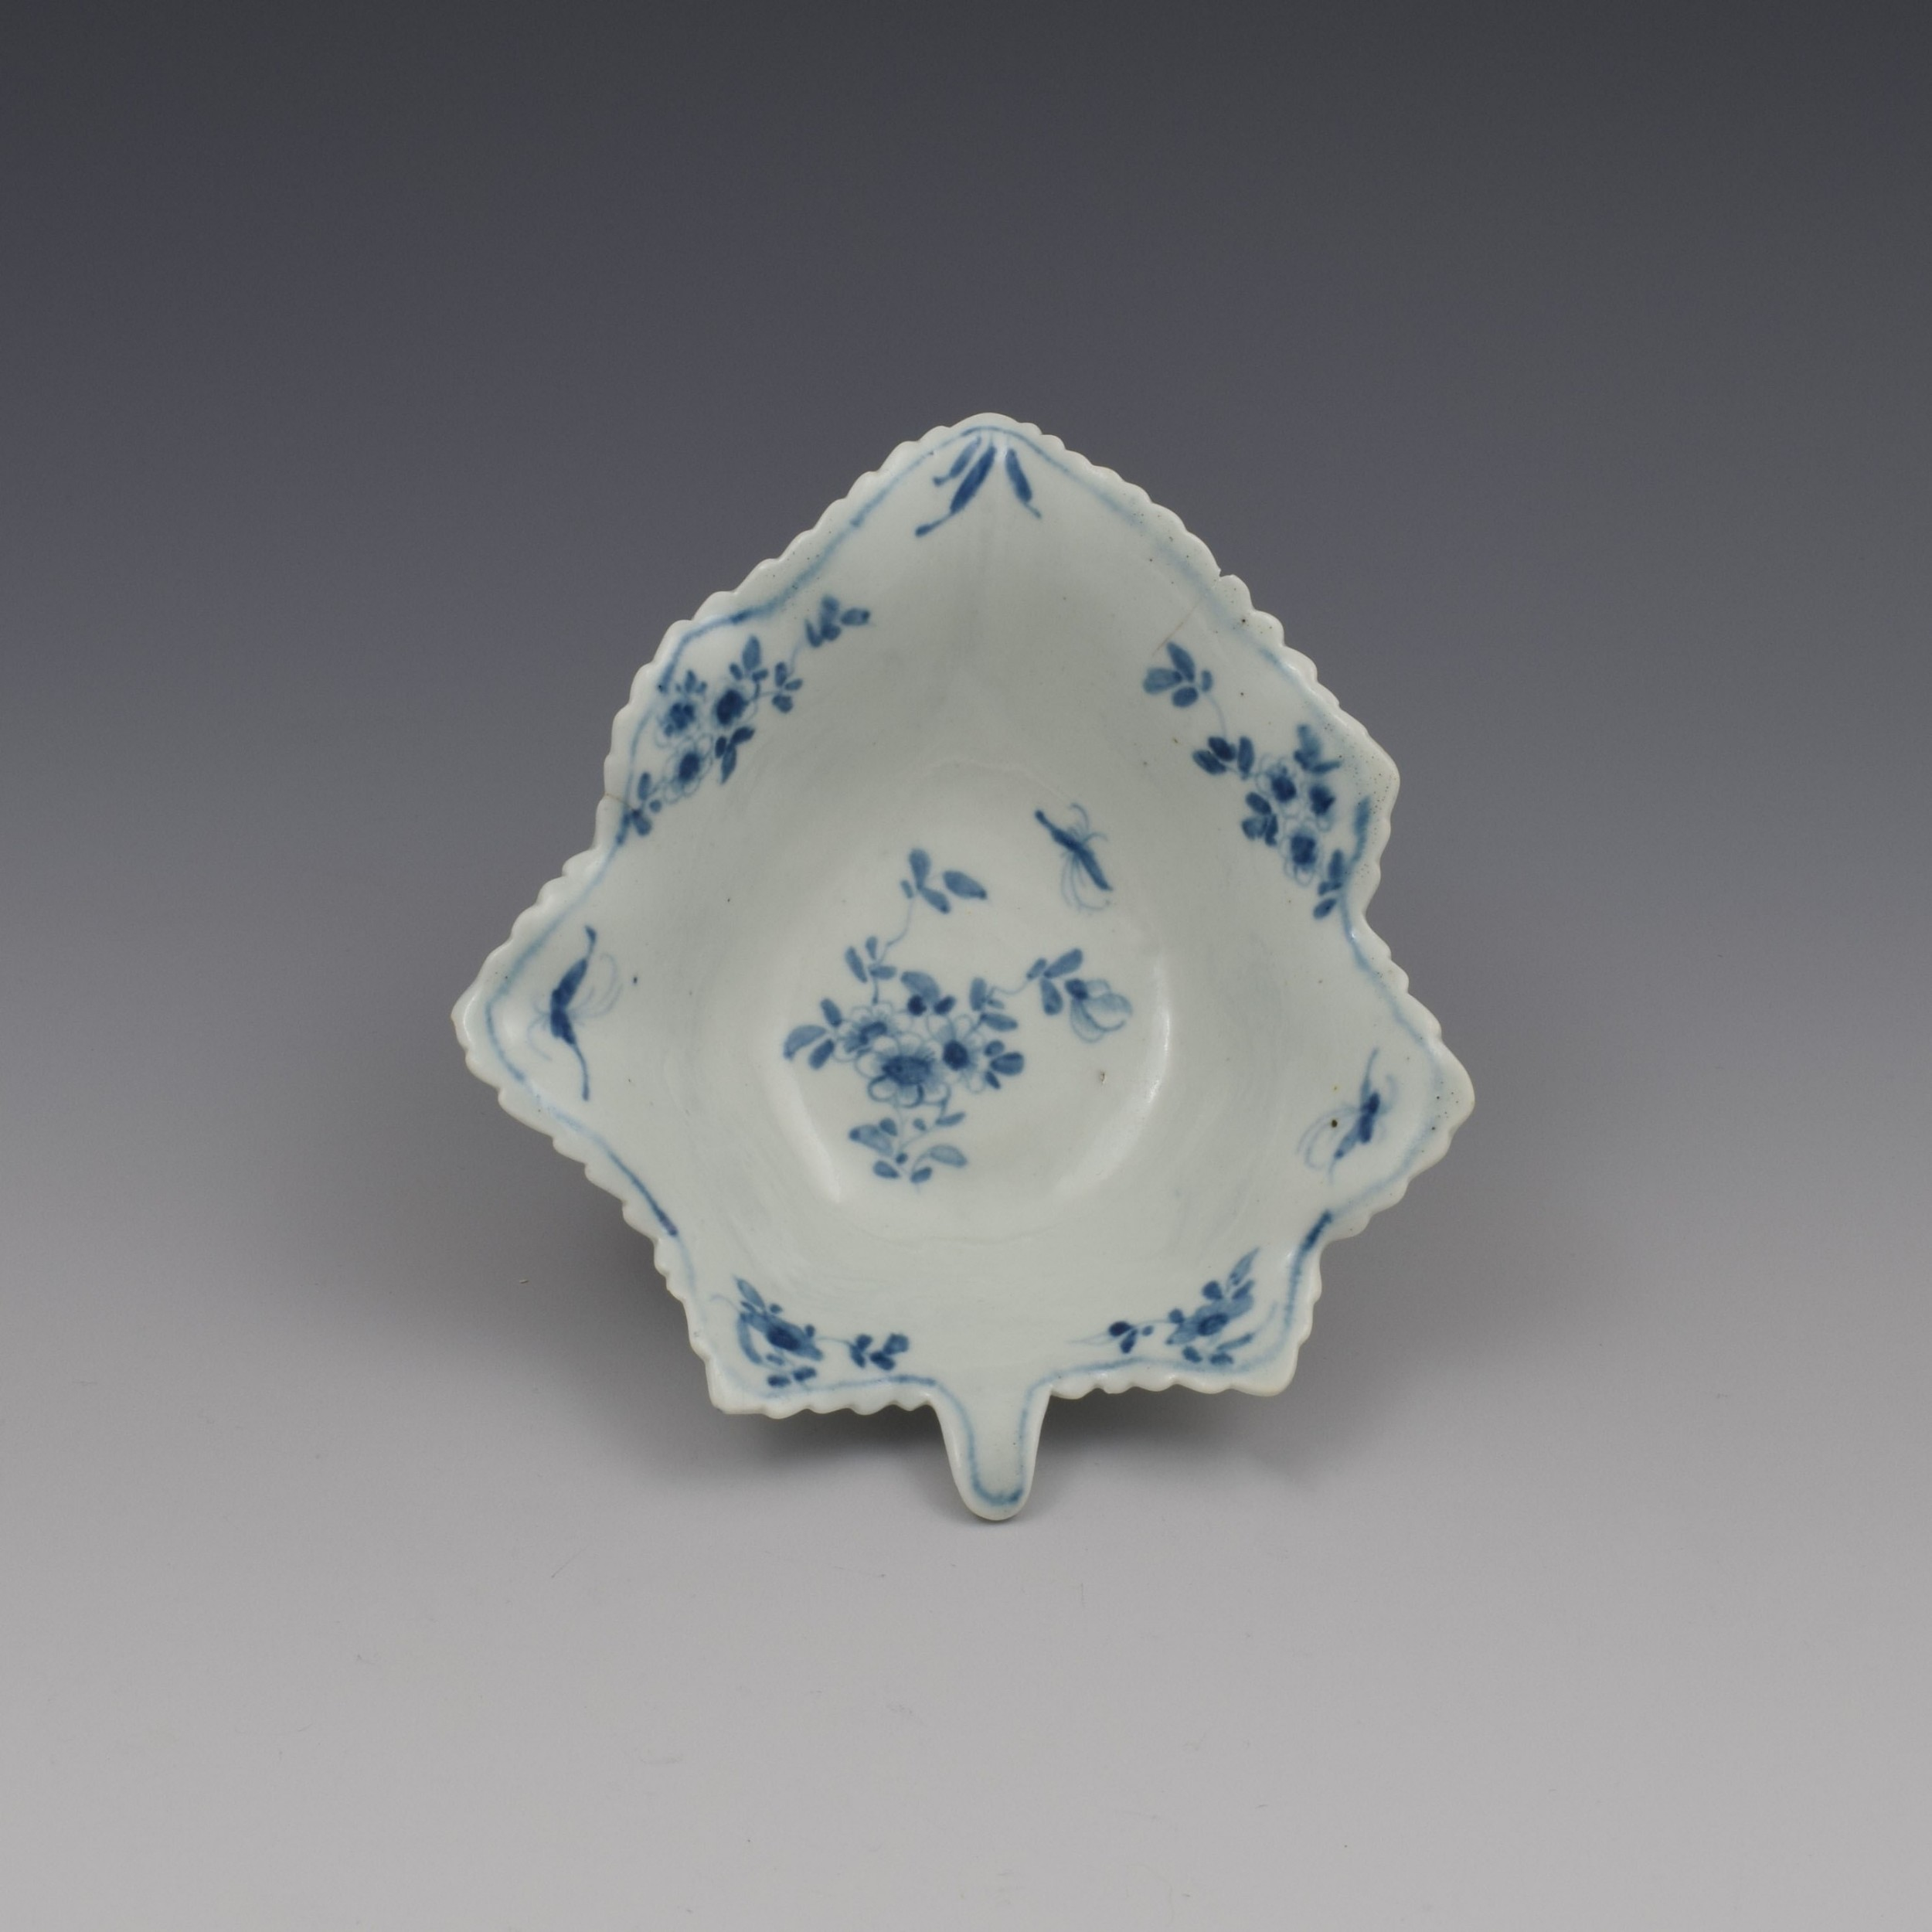 large first period worcester porcelain pickle leaf daisy dish c175865